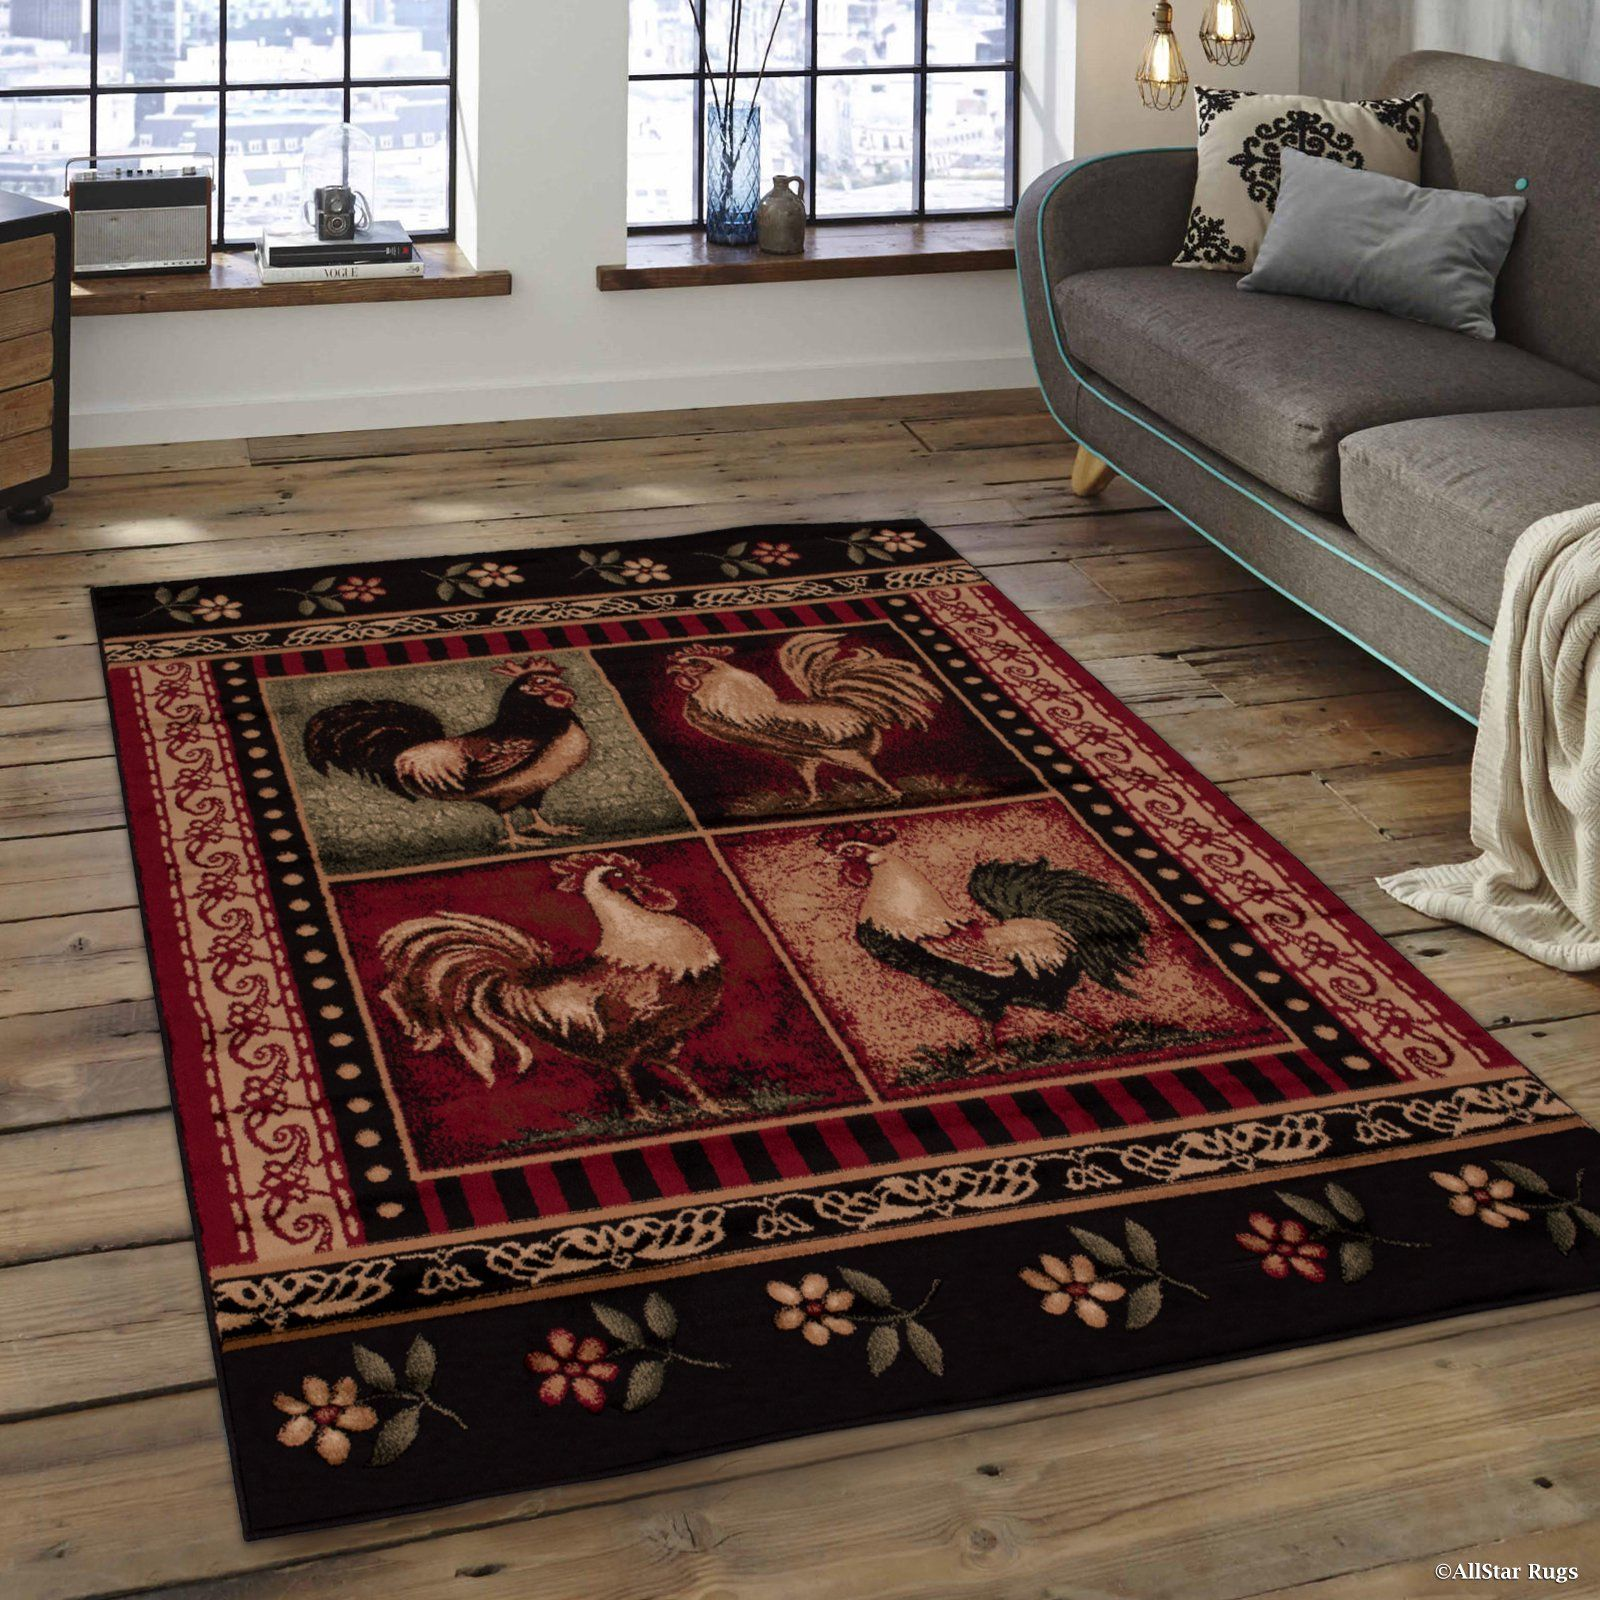 Brown And Red With Four Collated Rooster Images And Floral Frame Area Rug 5 2 X 7 2 Walmart Com Red Area Rug Rugs On Carpet Area Rugs